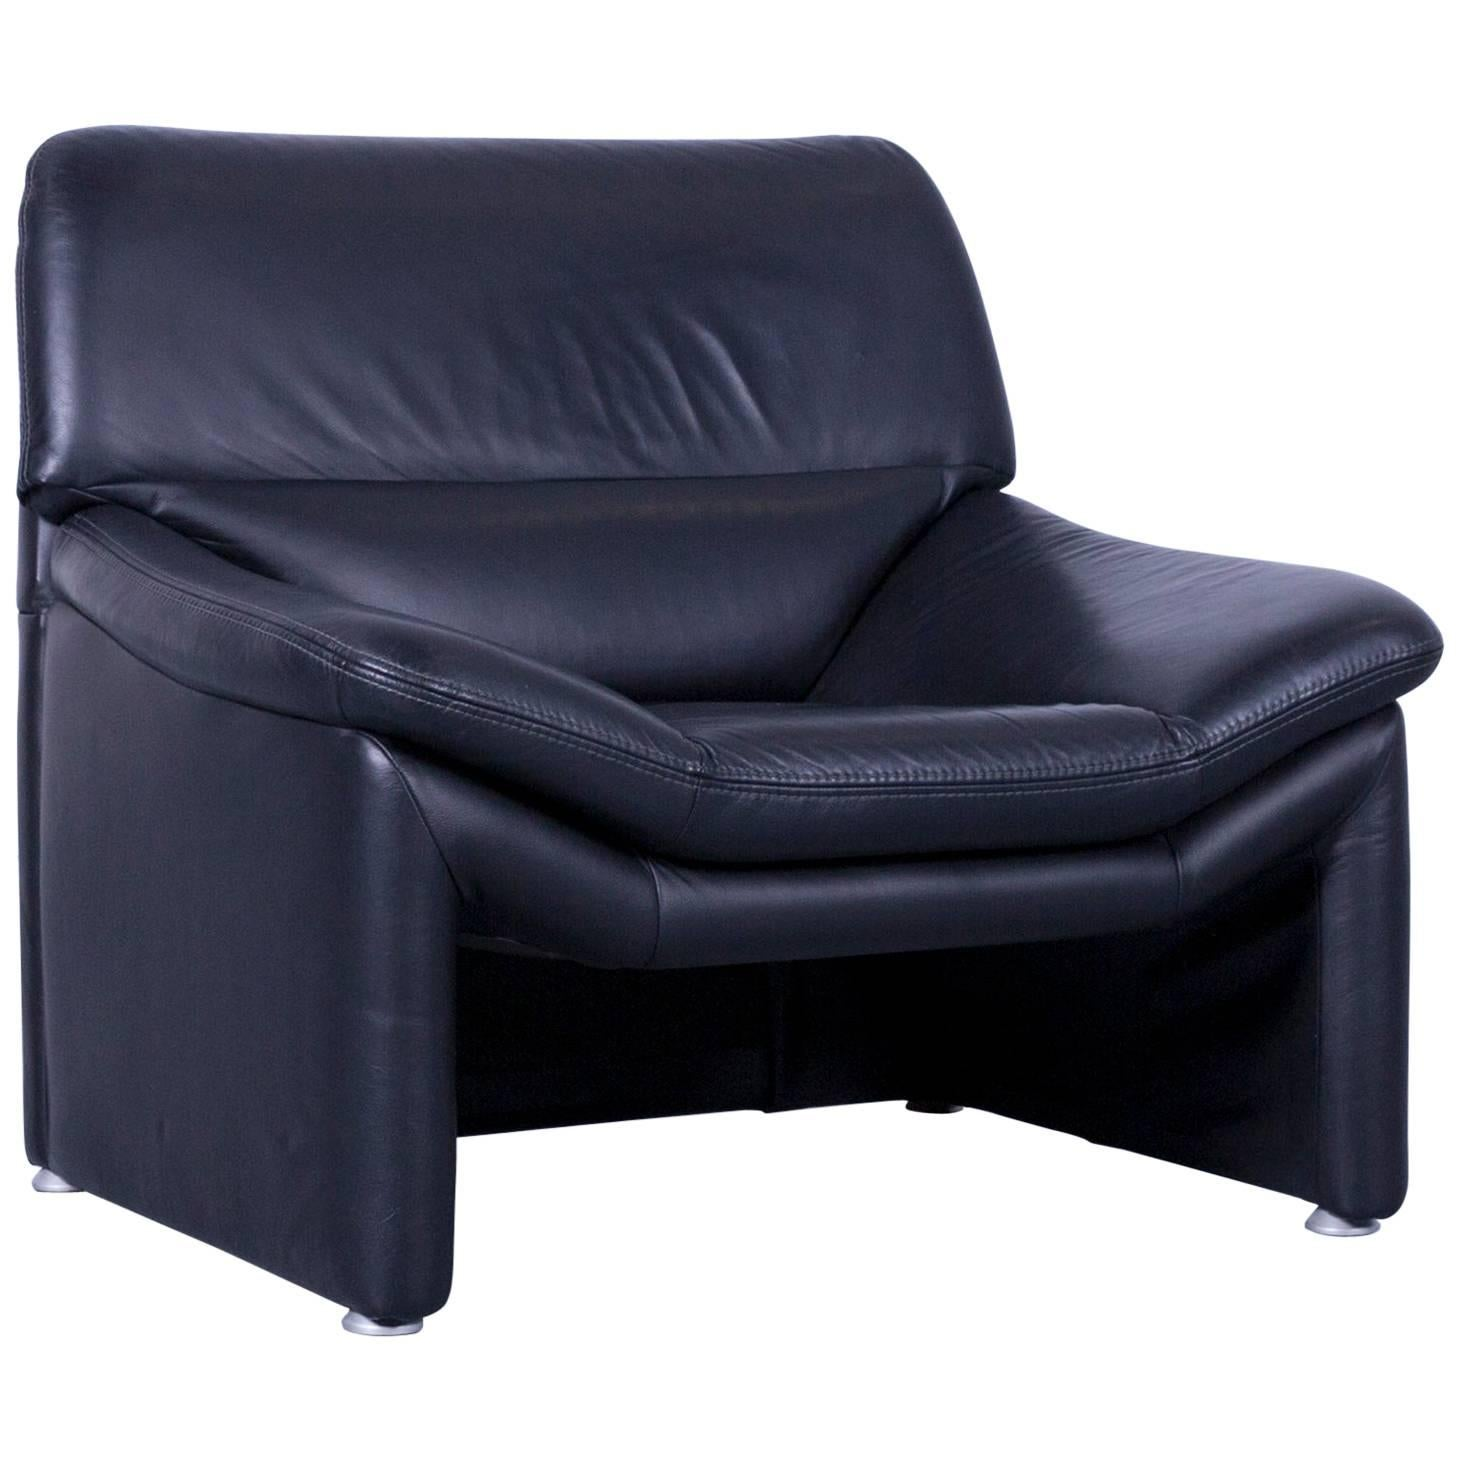 Weko Designer Armchair Leather Black One Seat Couch Modern For Sale